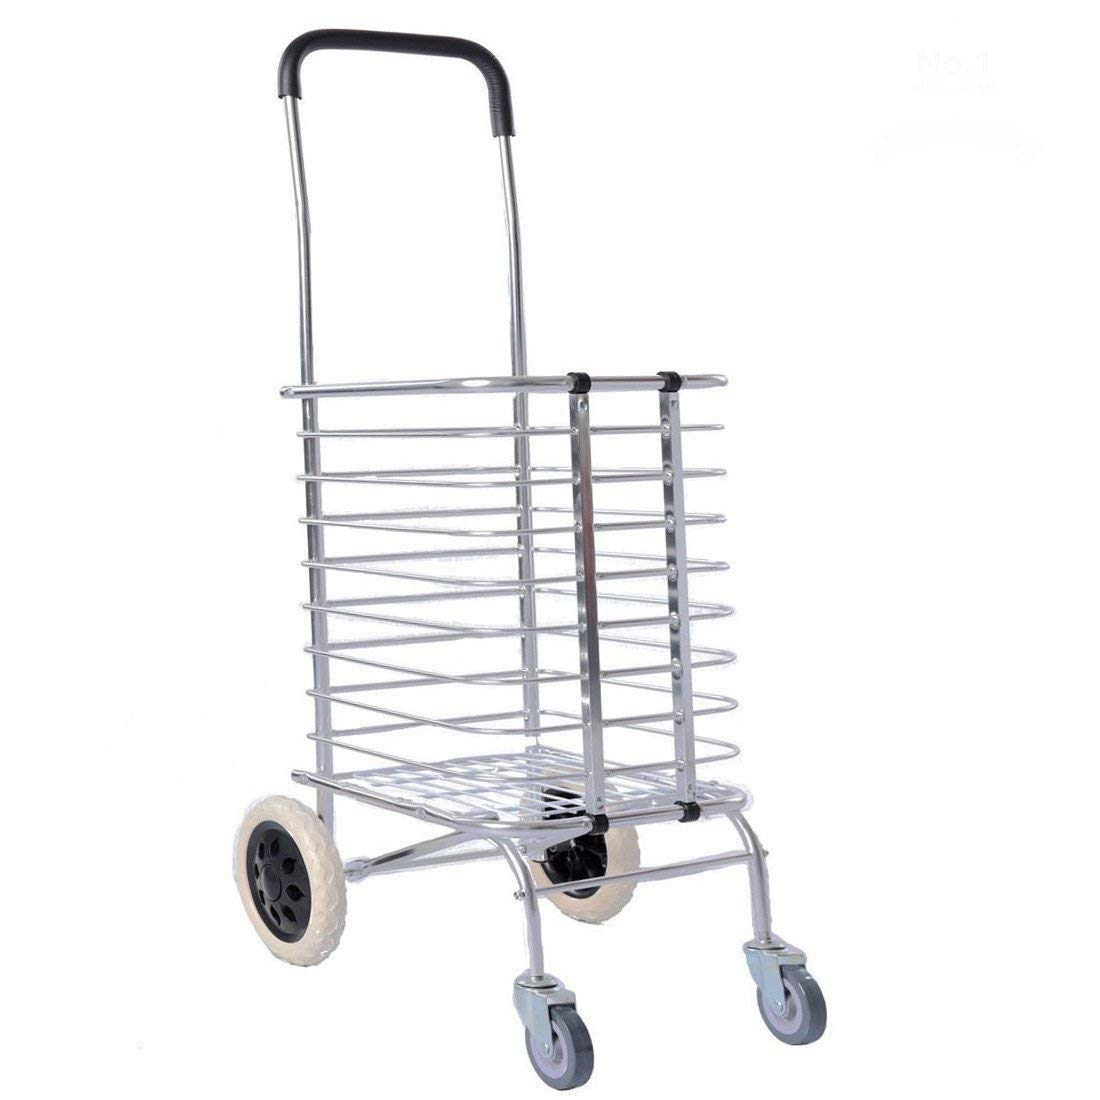 #1 Heavy Duty & Super Lightweight Aluminum Fold-able Shopping Cart Push Trolley Dolly for Groceries & Laundry - New Design Only 7 lbs